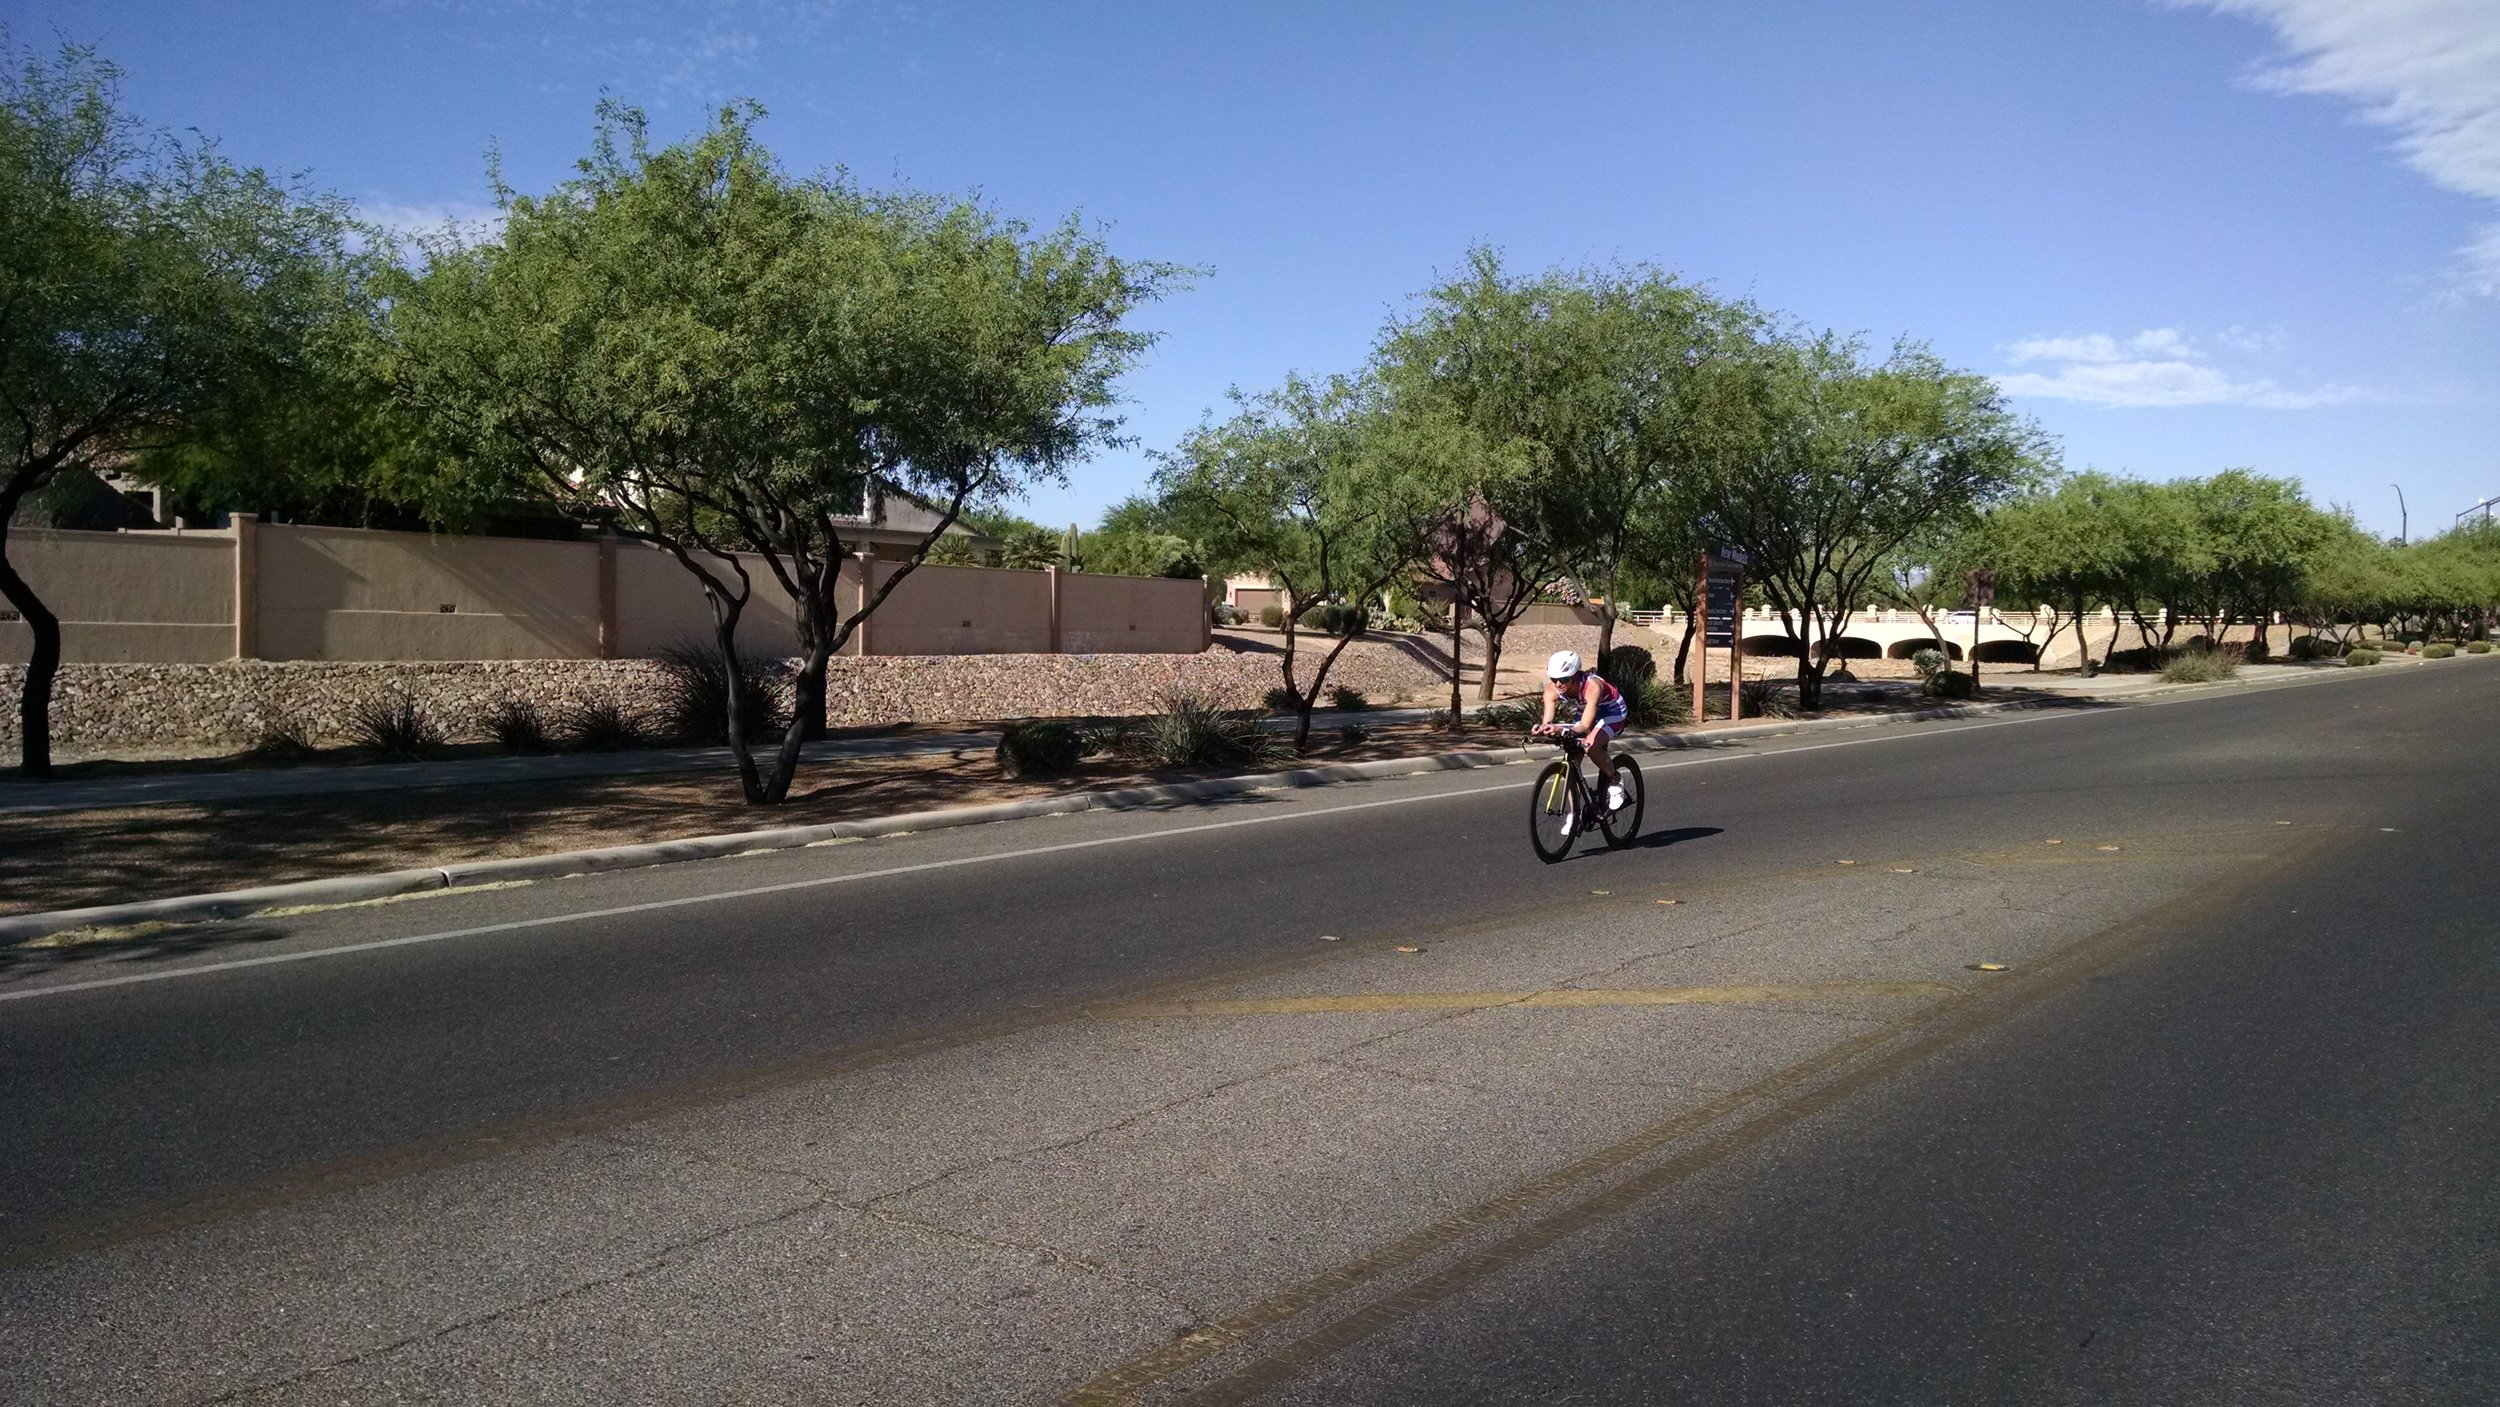 Coming in on the bike